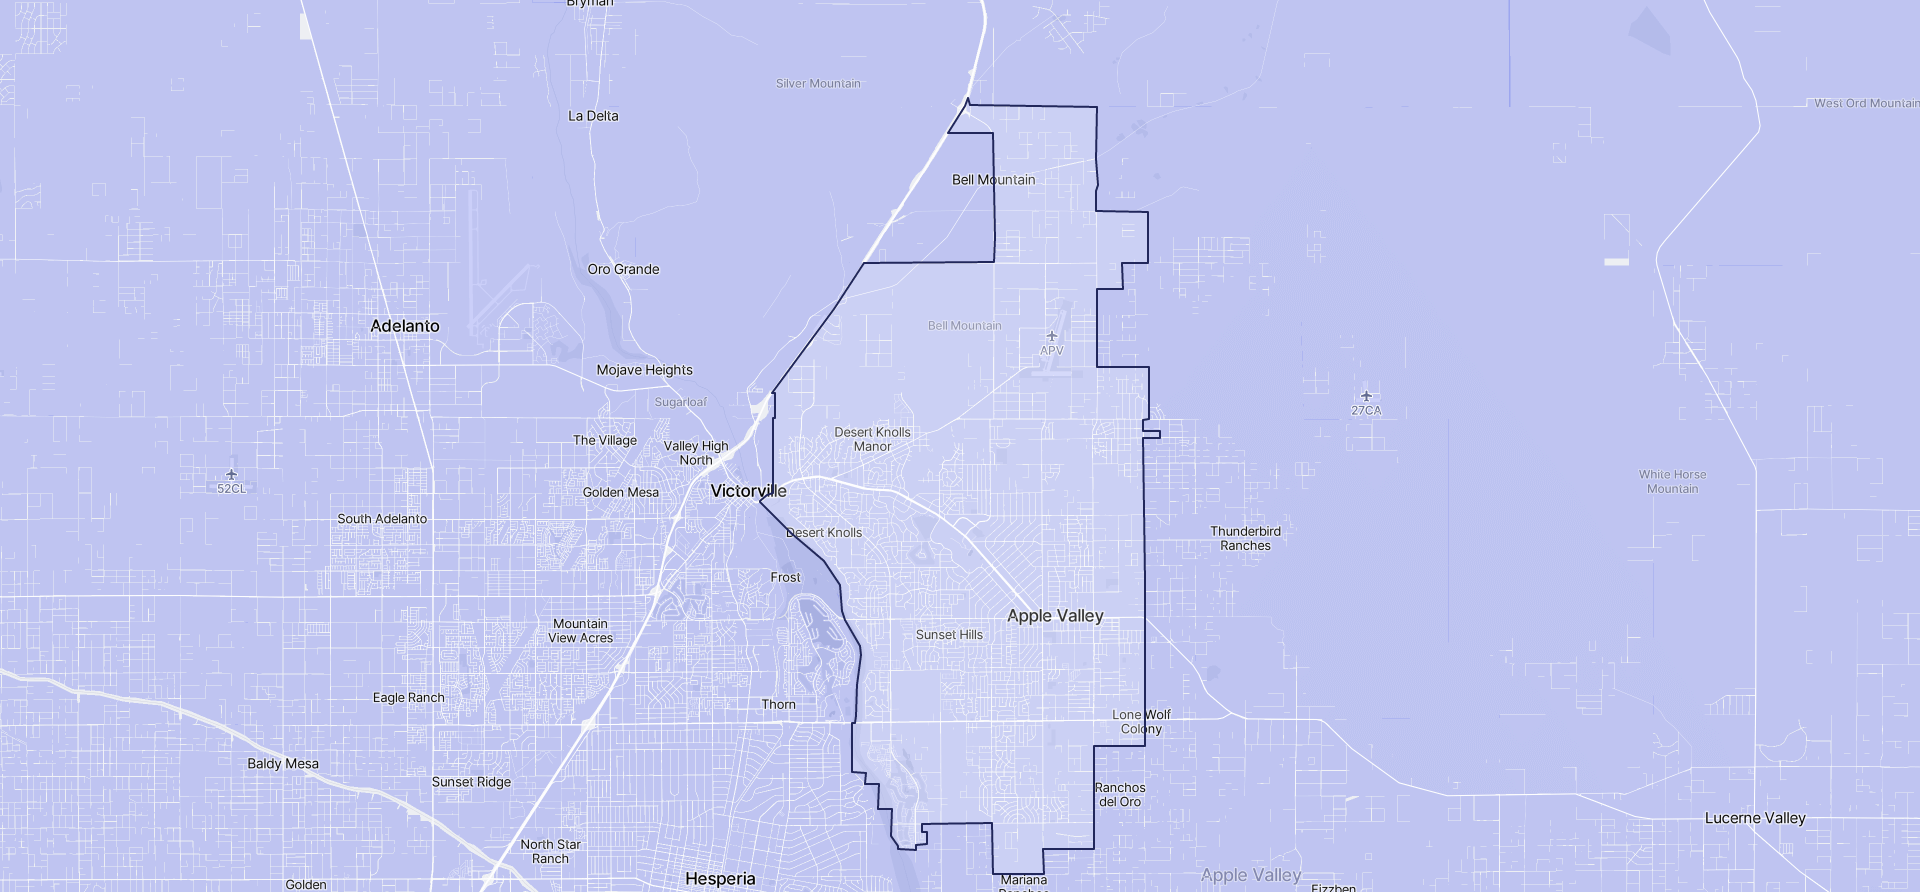 Image of Apple Valley boundaries on a map.